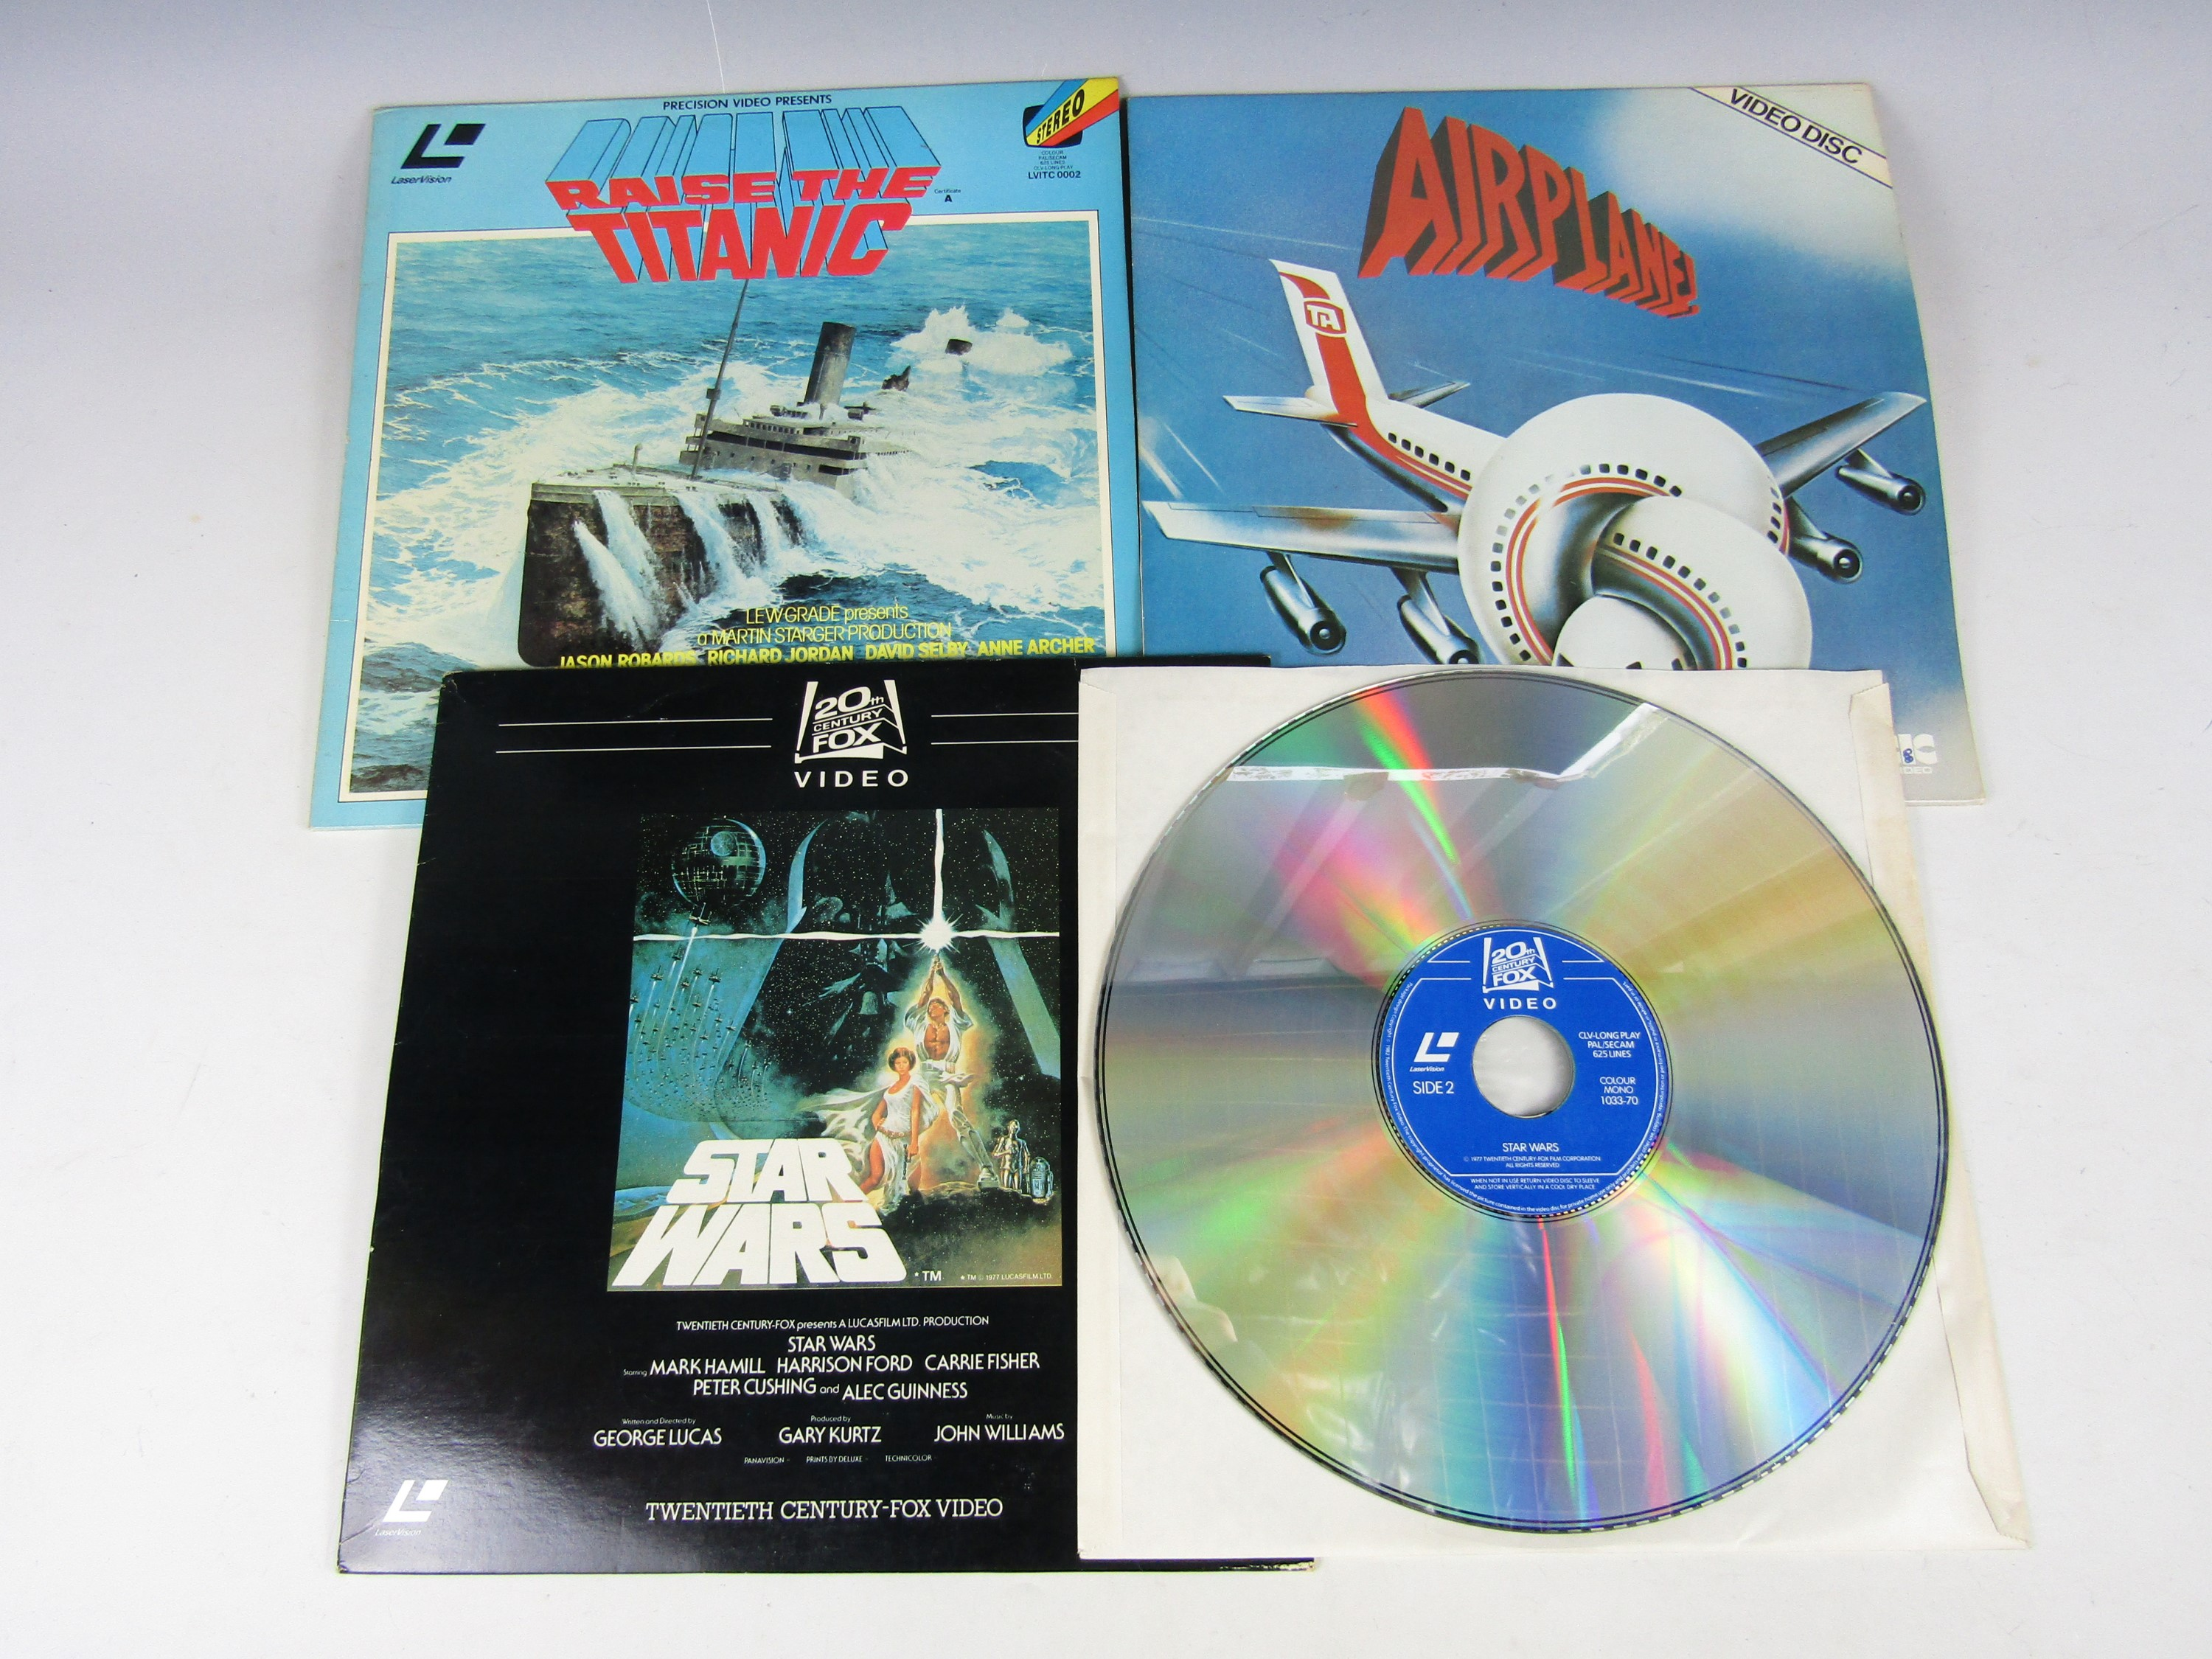 Lot 10 - A Star Wars video disc together with an Airplane video disc and Raise the Titanic video disc